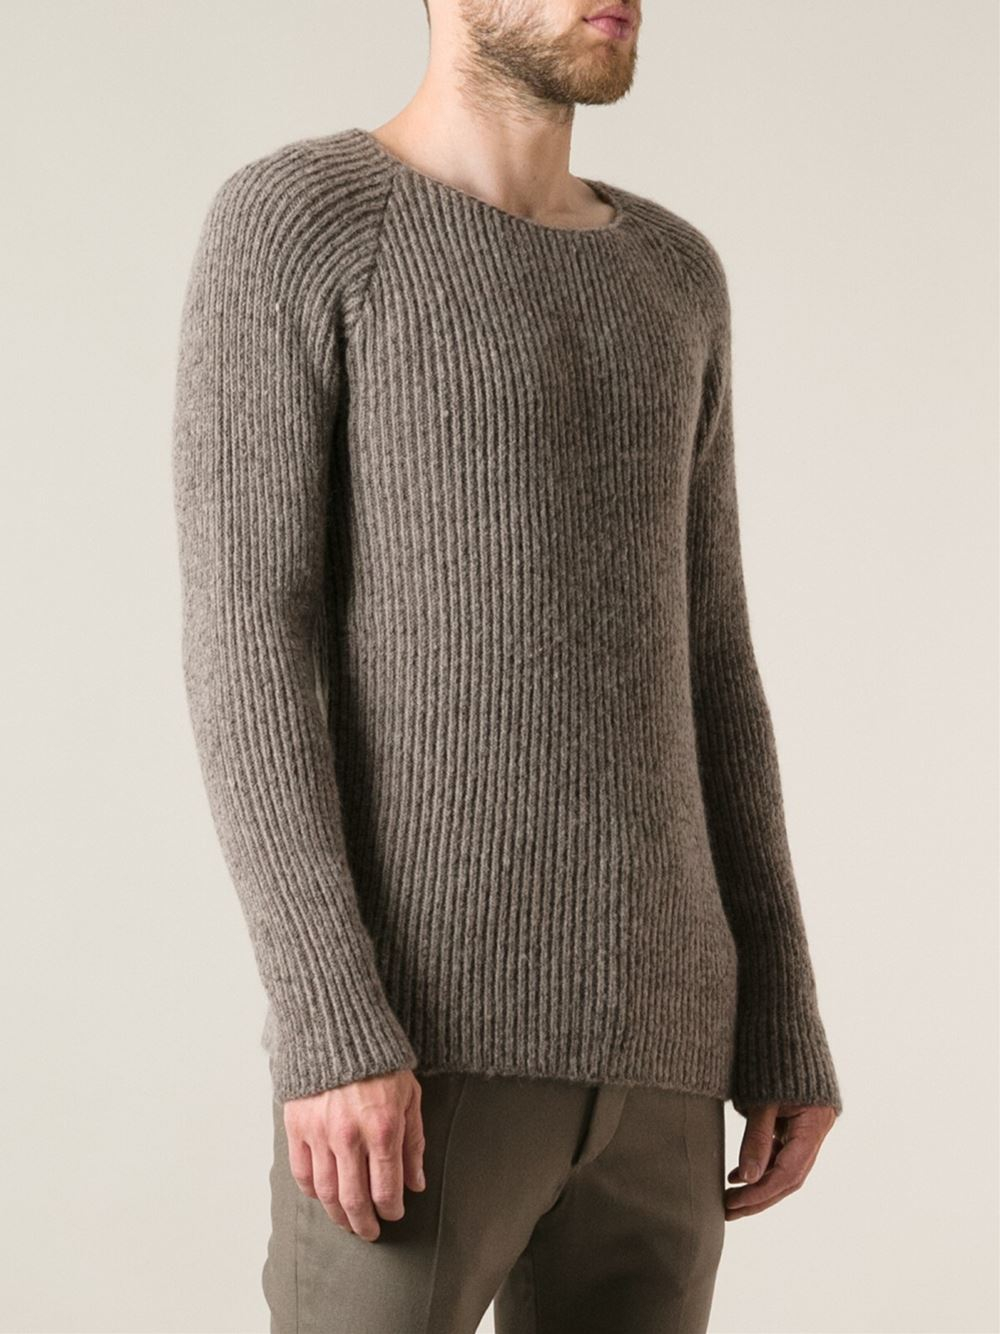 Mens Turtleneck Shirts